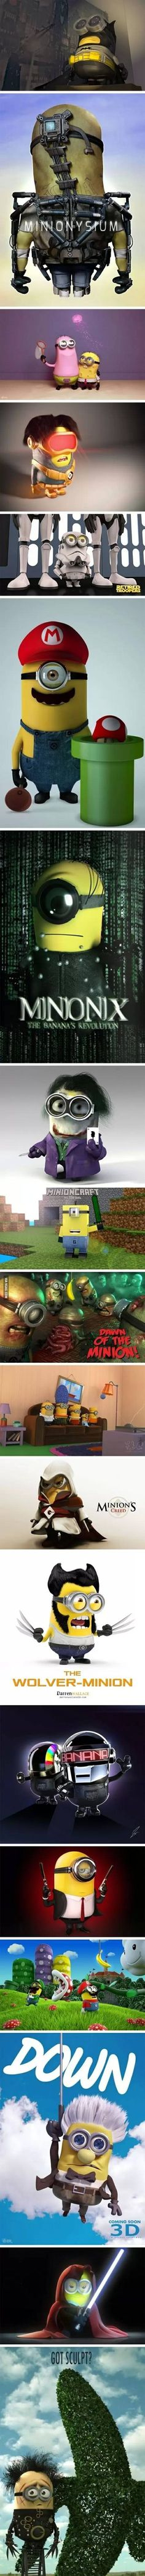 Minions!!!!!!!! This might be better than the other one!!